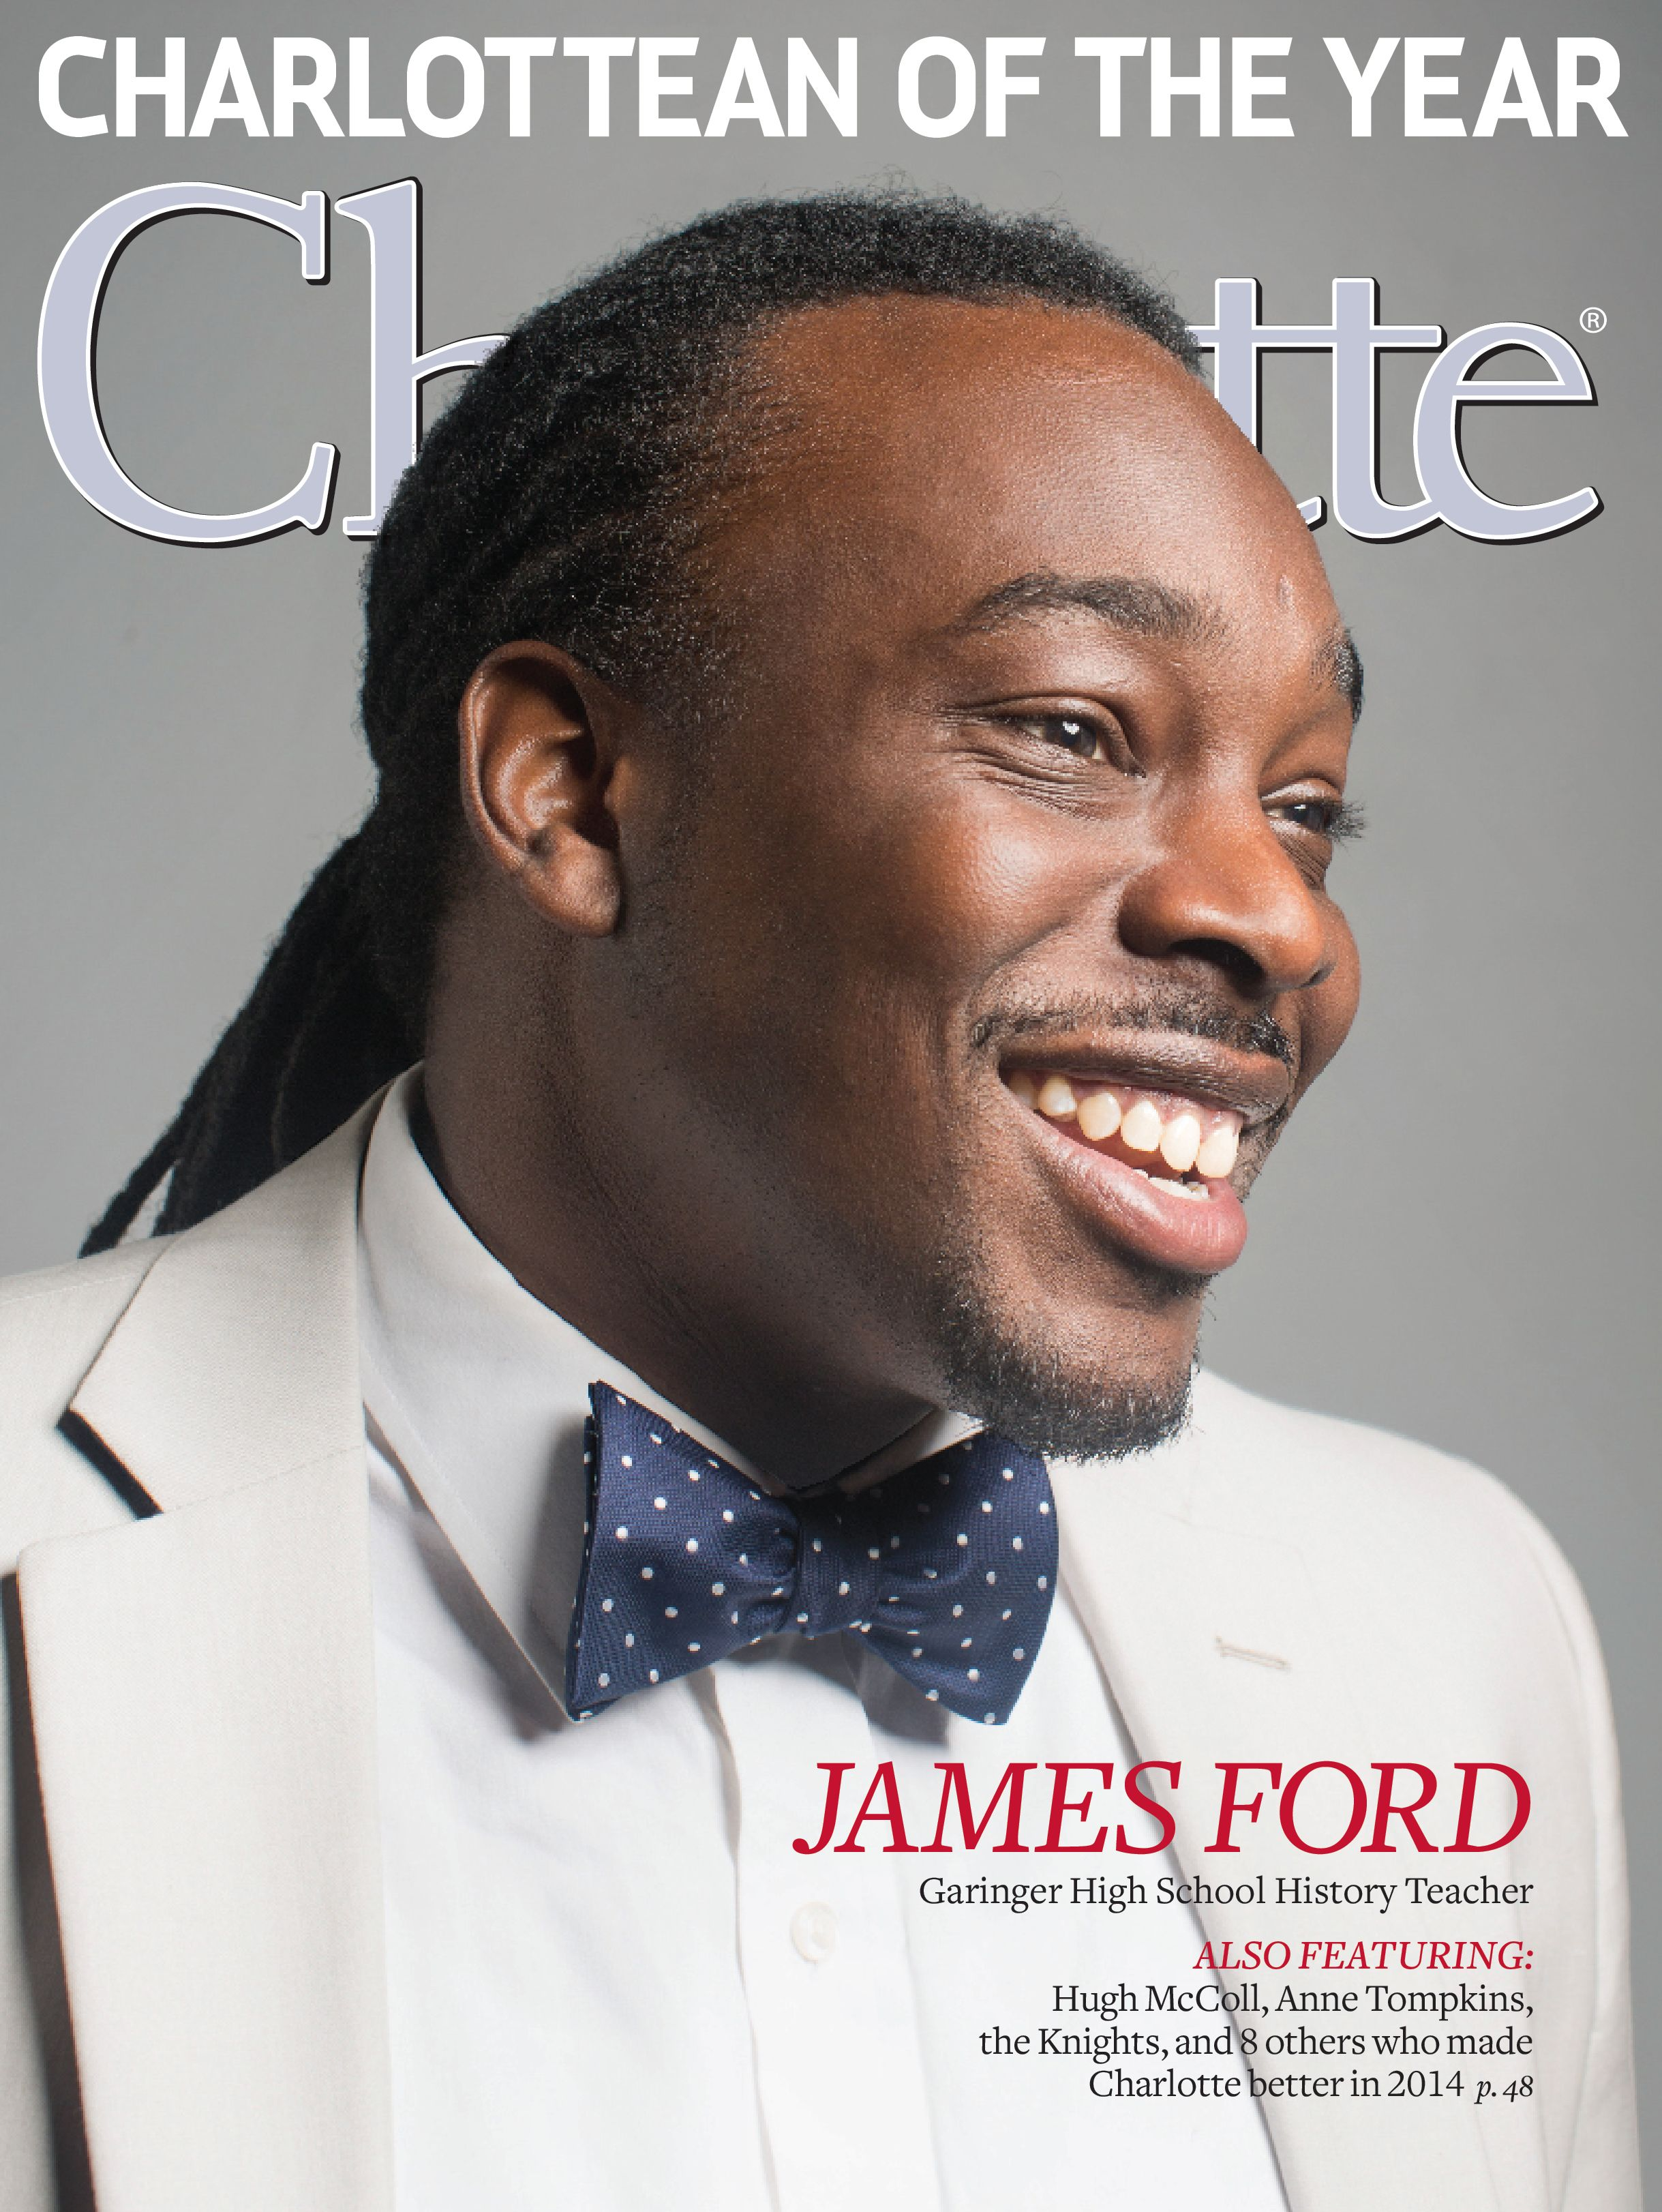 December 2014 issue of Charlotte magazine